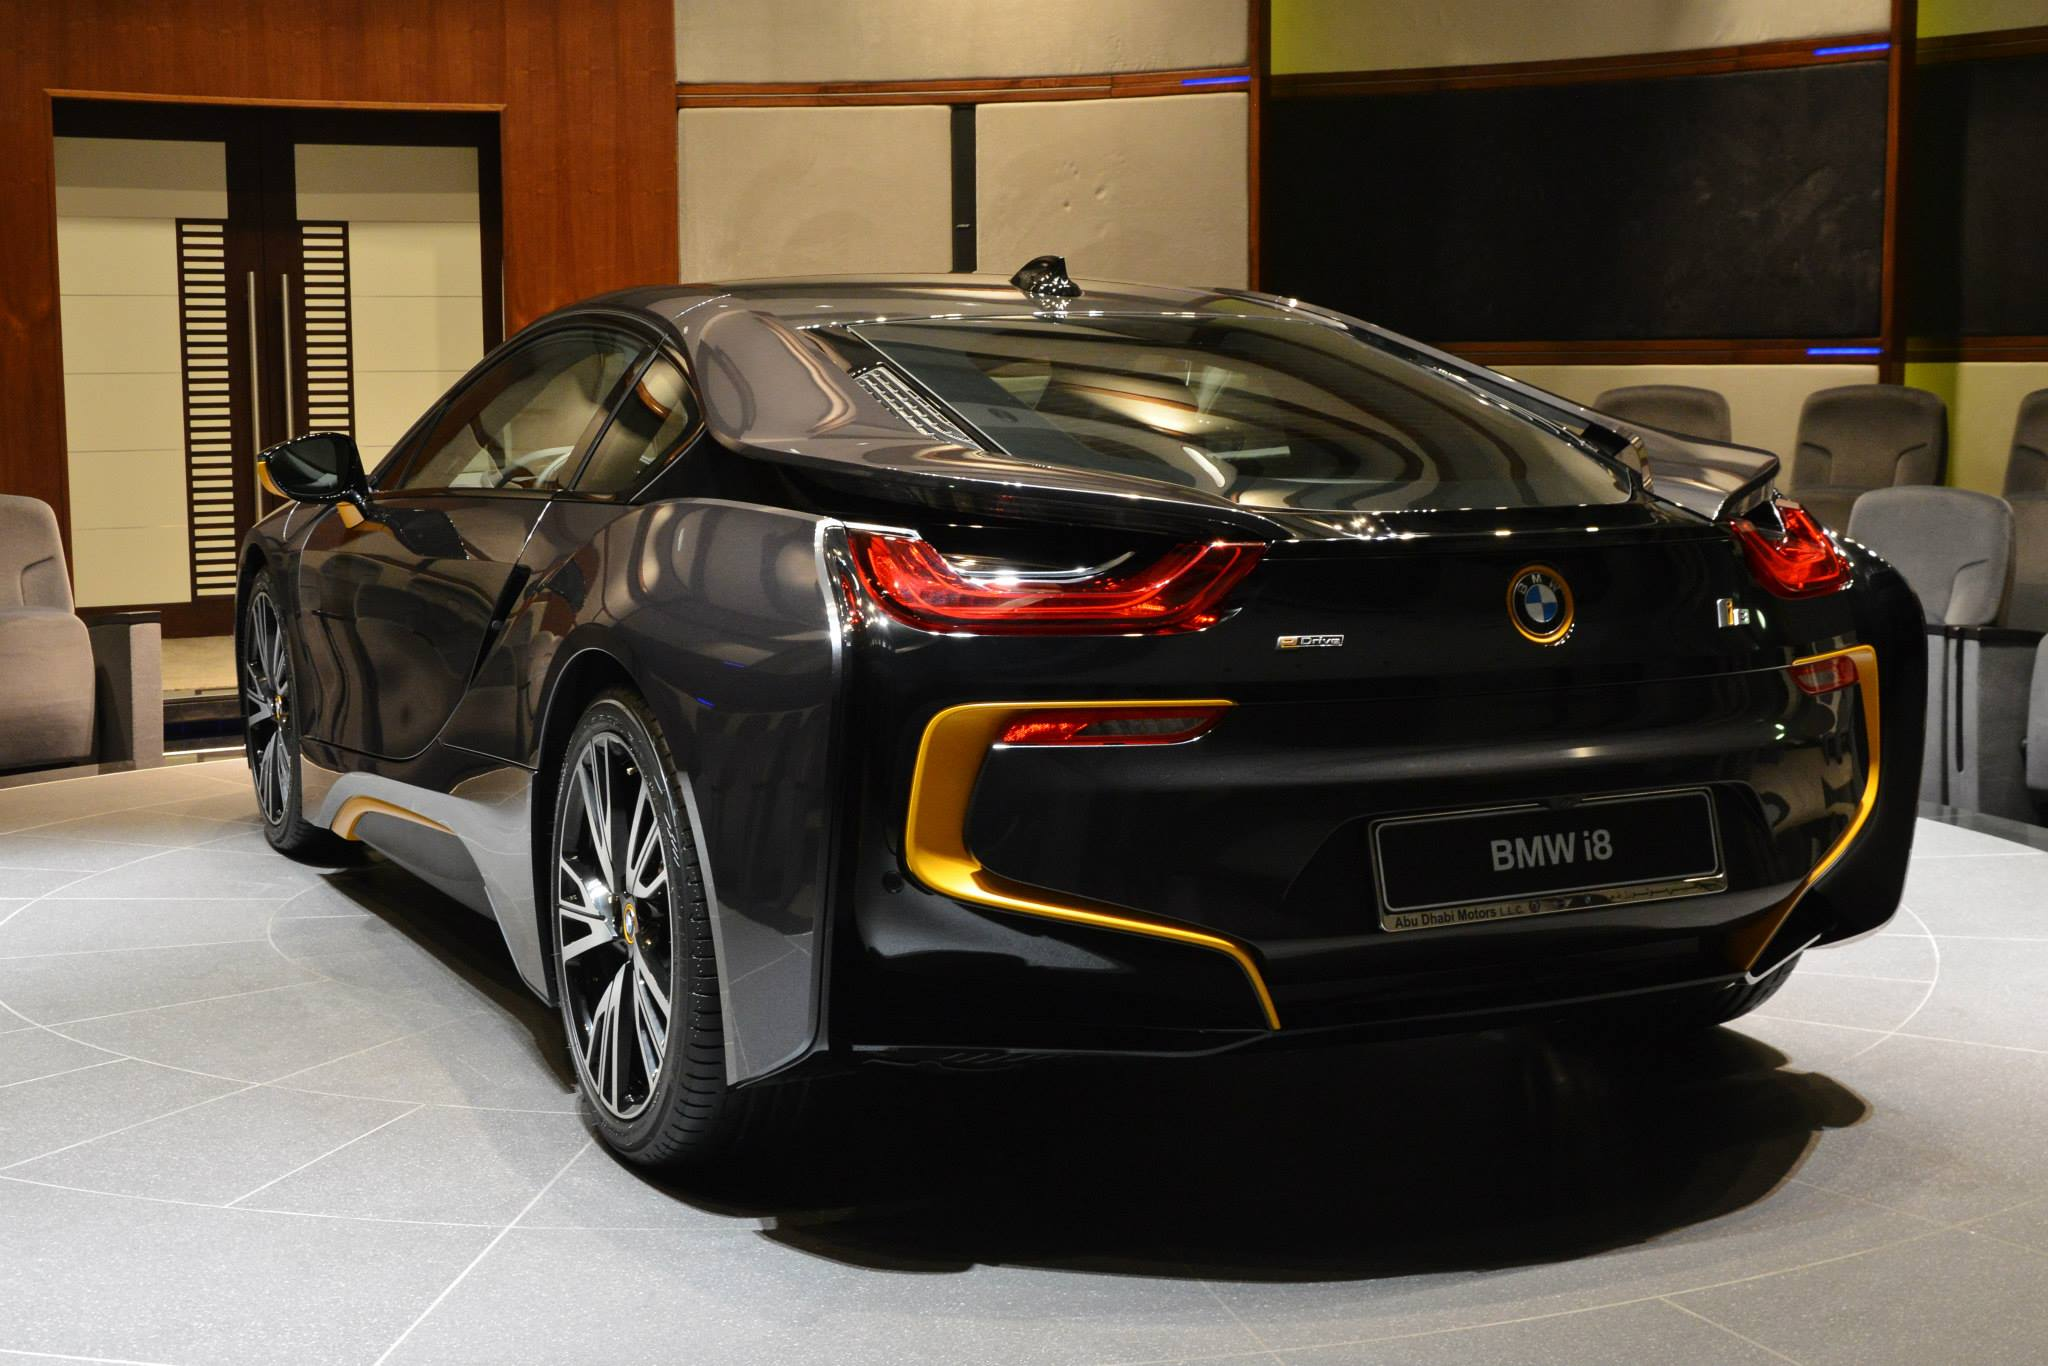 Bmw I8 In Sophisto Grey With Yellow Accents